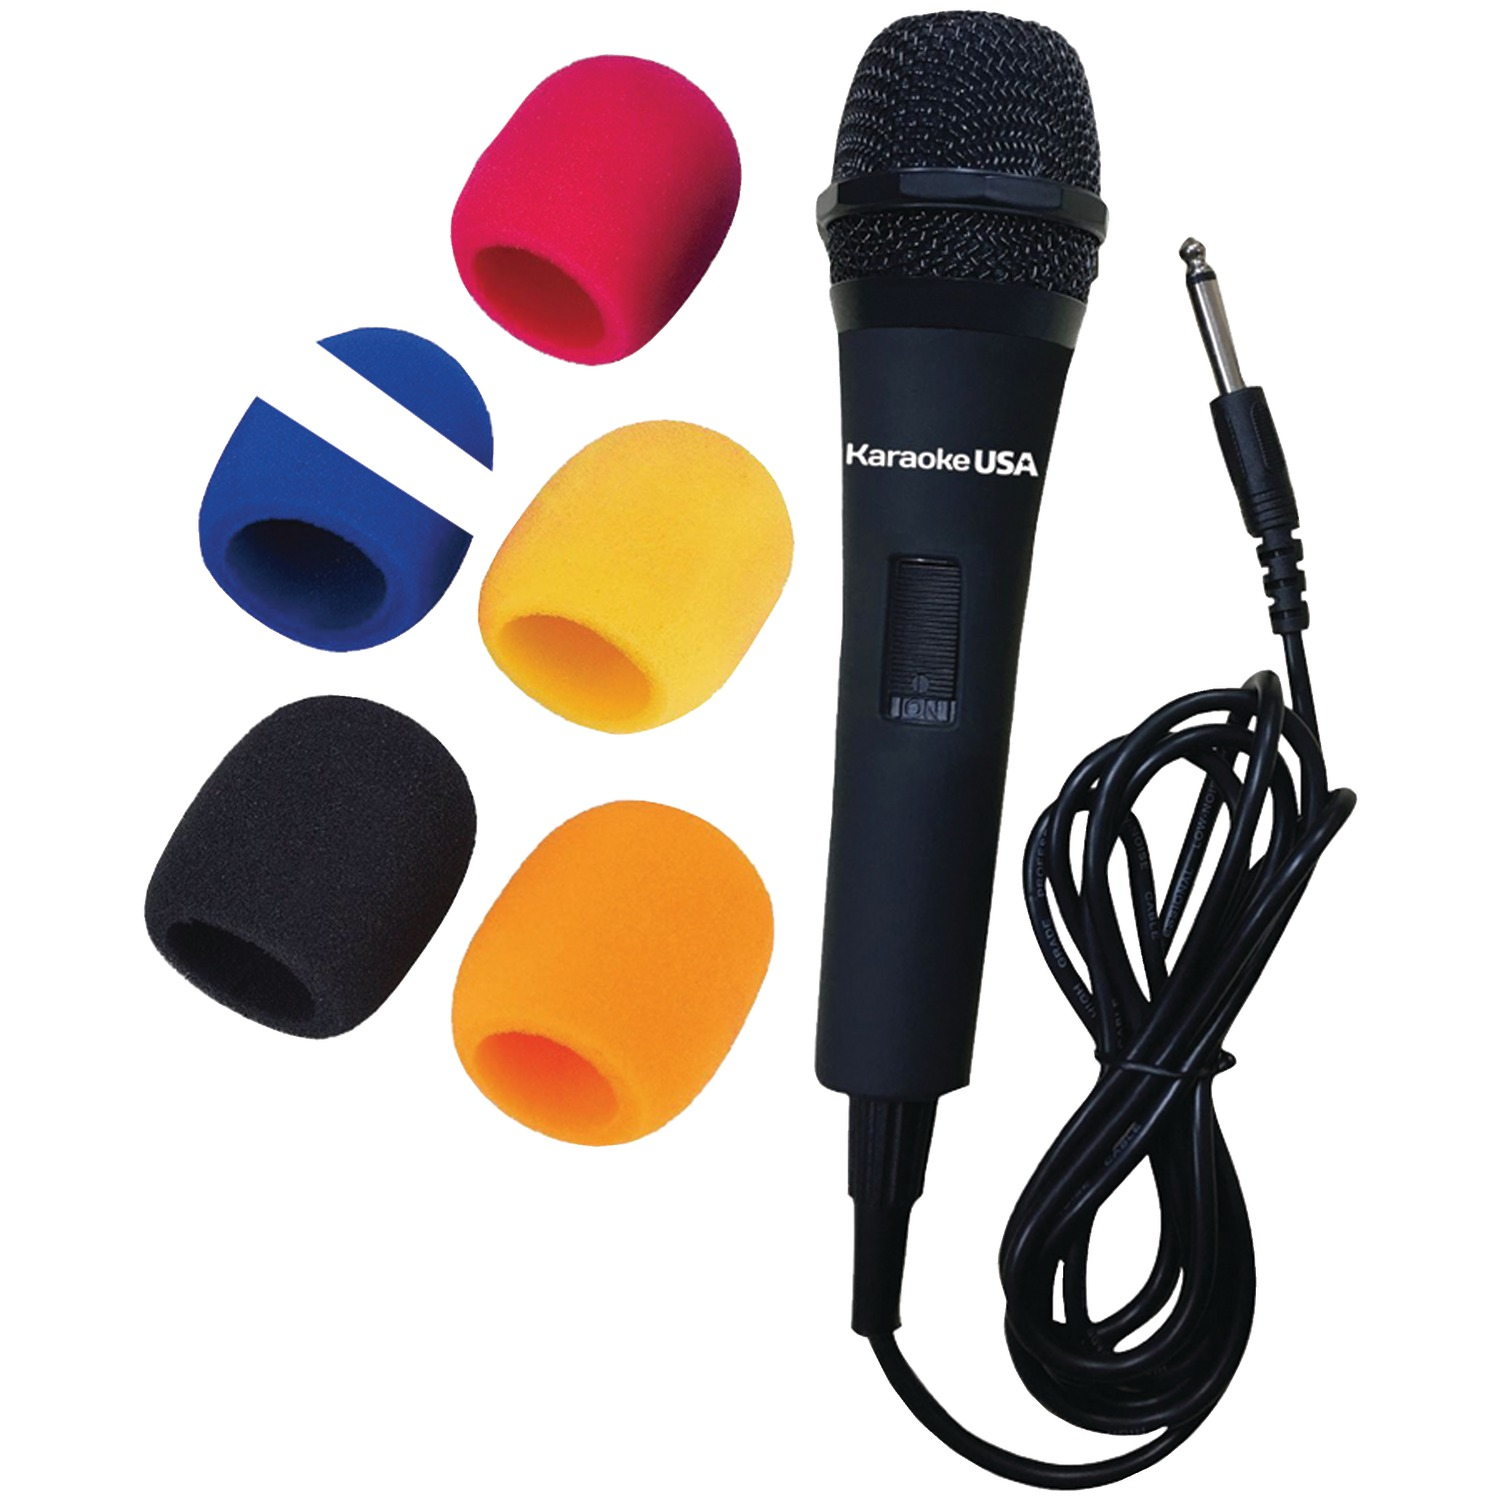 Karaoke USA M175 Professional Microphone with 5 Windscreens